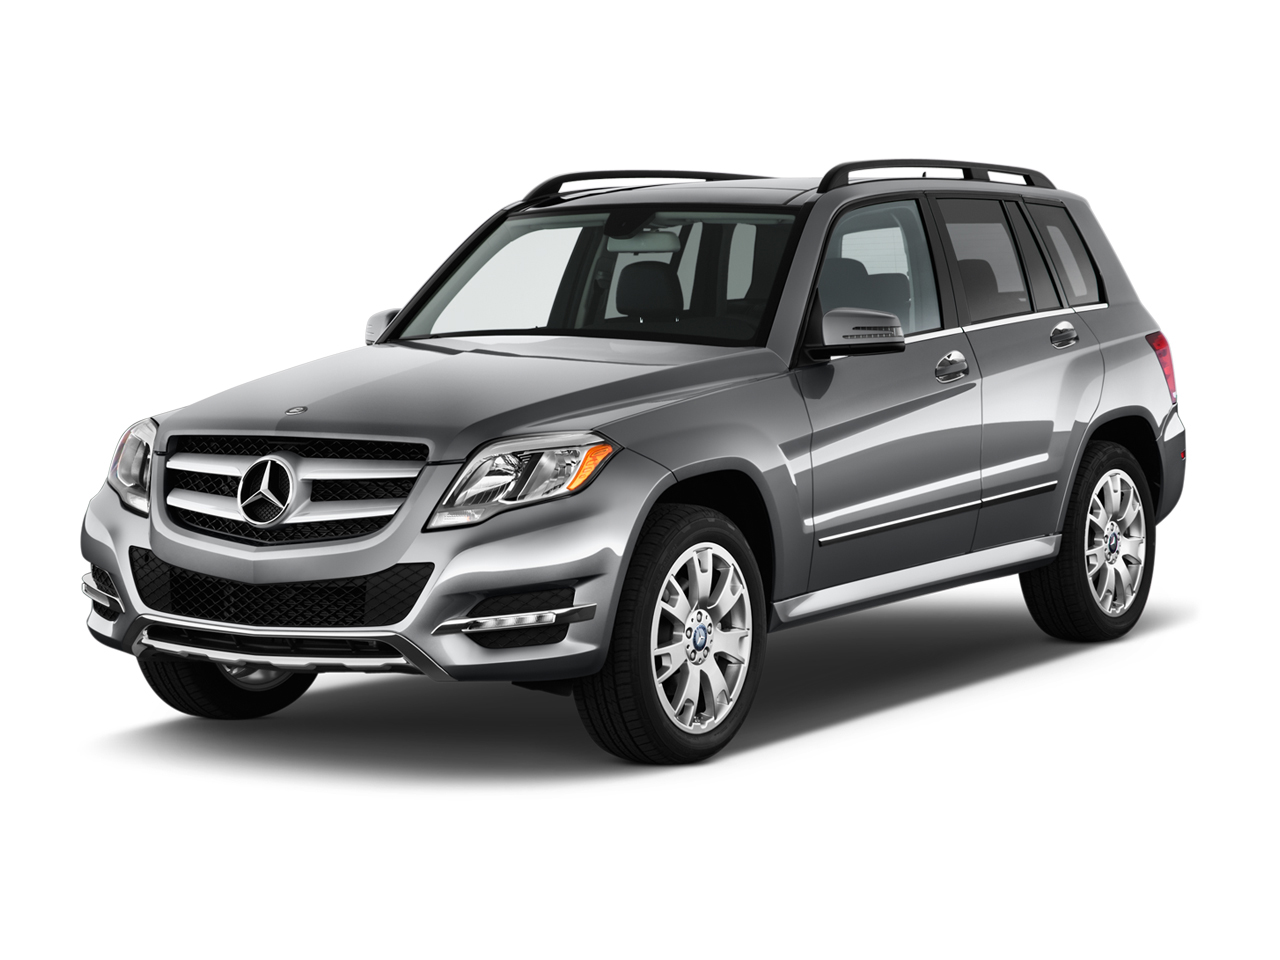 2015 mercedes benz glk class review ratings specs prices and photos the car connection. Black Bedroom Furniture Sets. Home Design Ideas